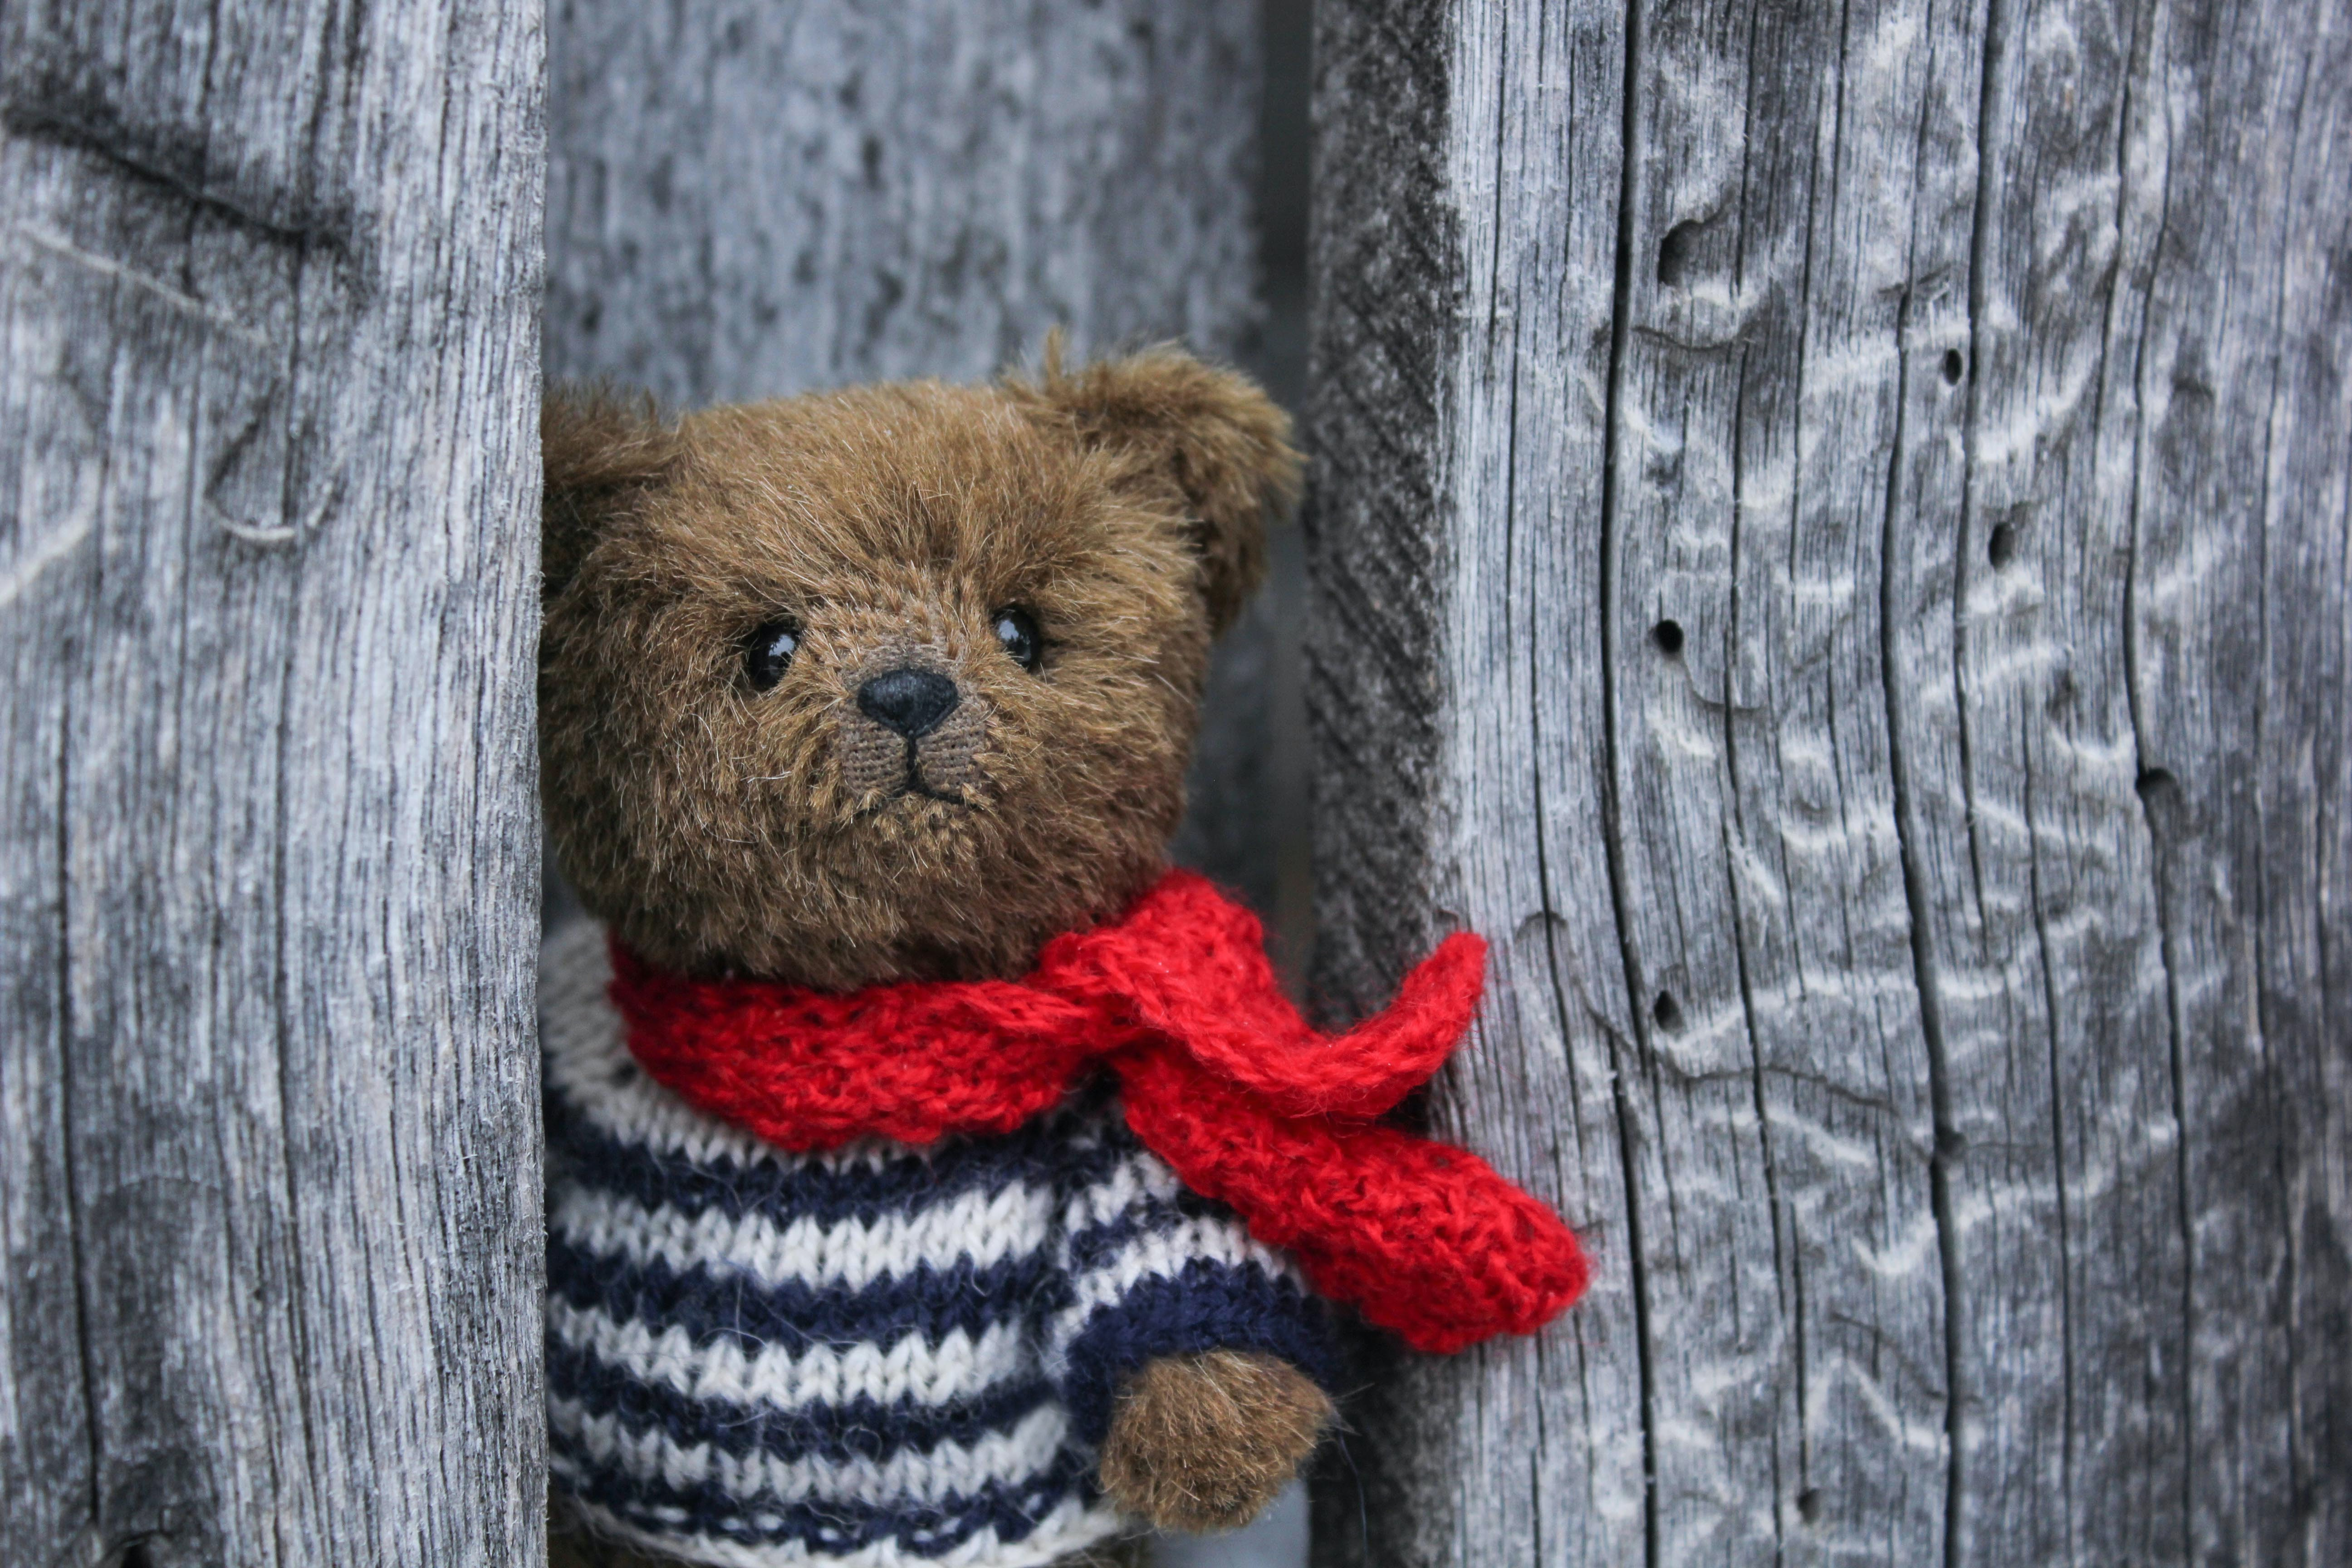 Cute teddy bear, between wooden posts, wearing a knitted blue and white striped jumper and a red scarf